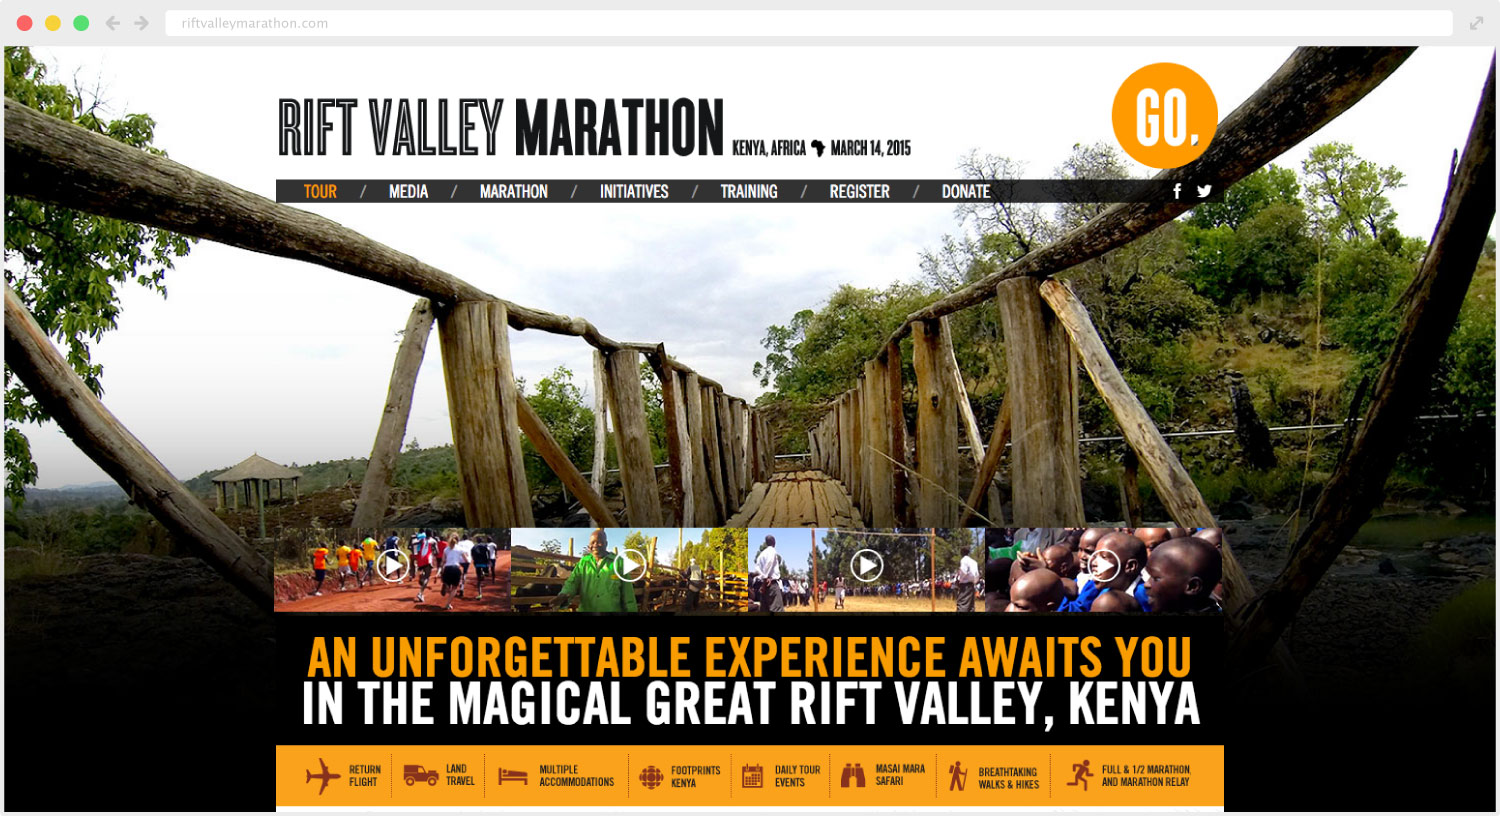 Rift Valley Marathon website design and development